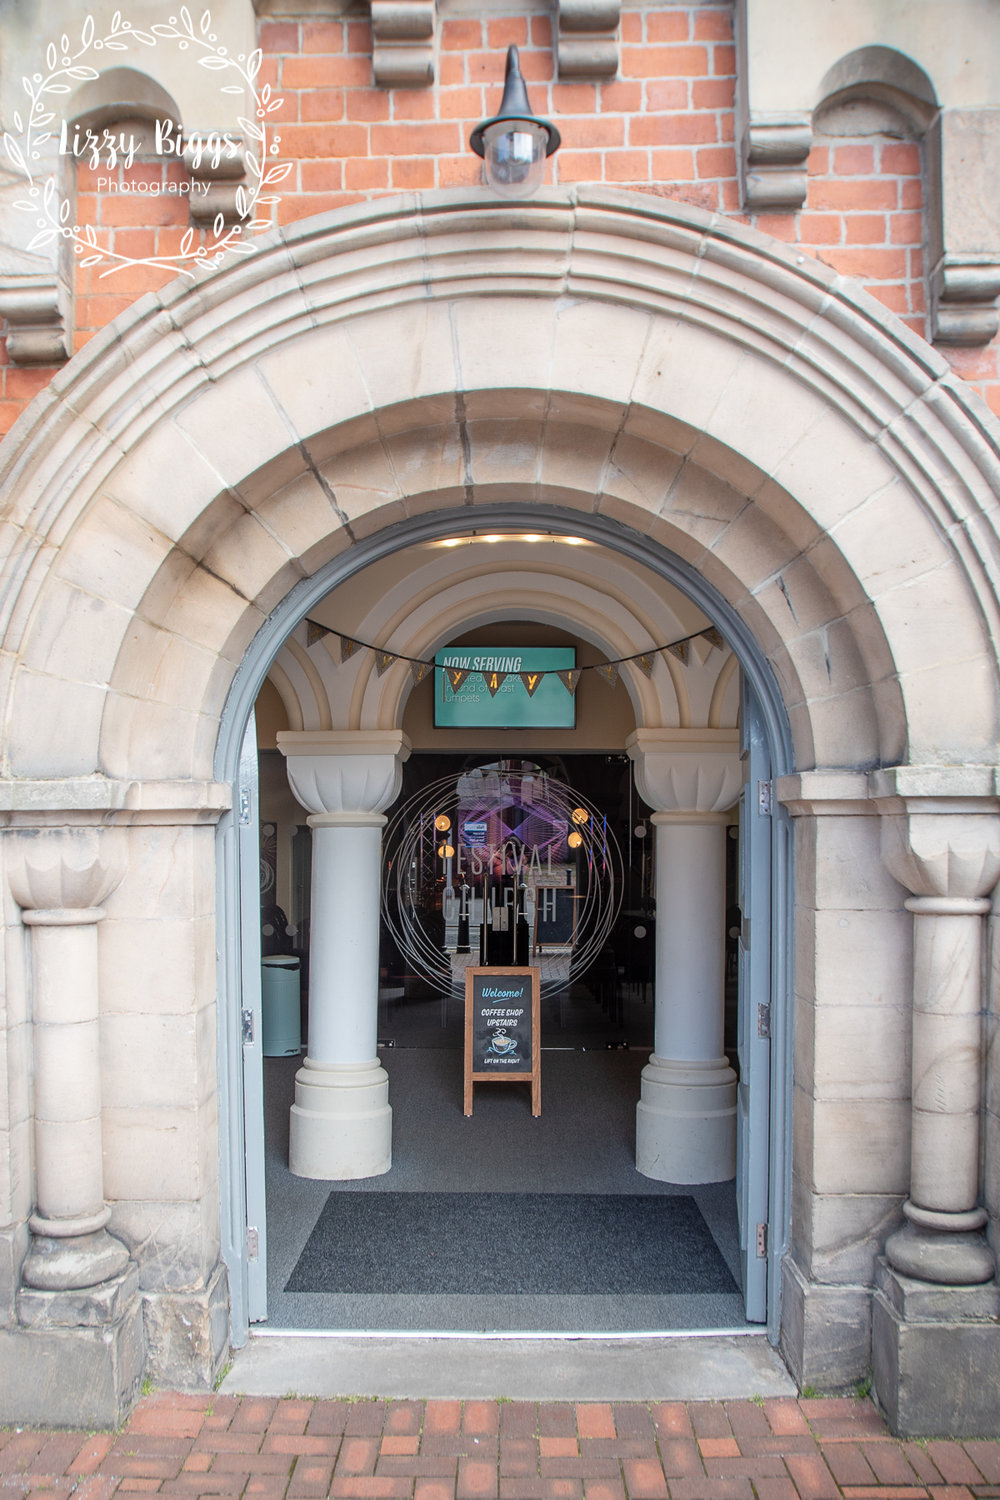 Lizzy-Biggs-Photography-Festival-church-and-Festival-Coffee-Chester-entrance.JPG